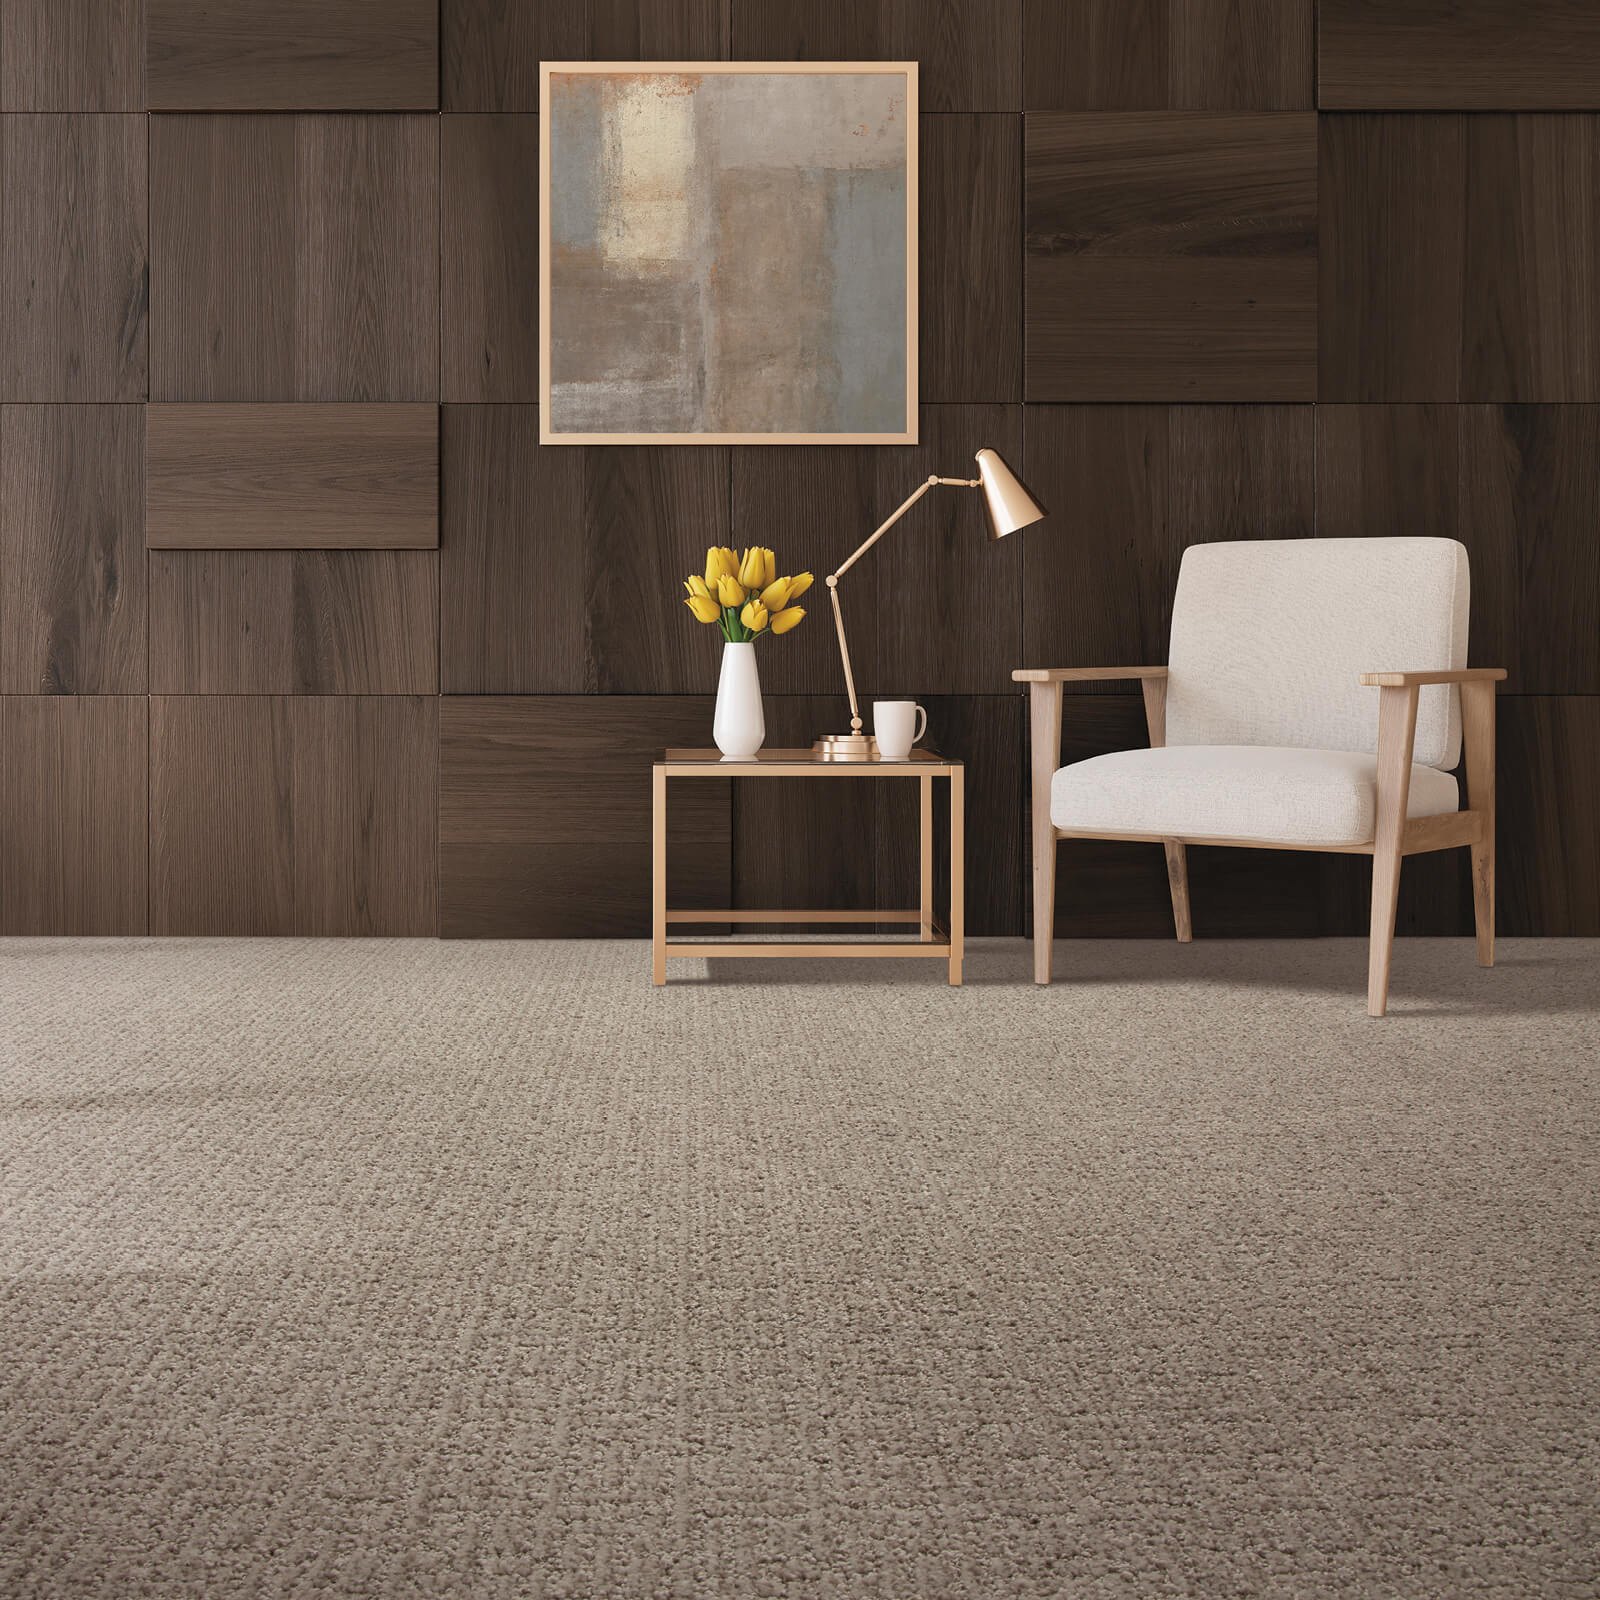 Carpeting with Chair   Haley's Flooring & Interiors